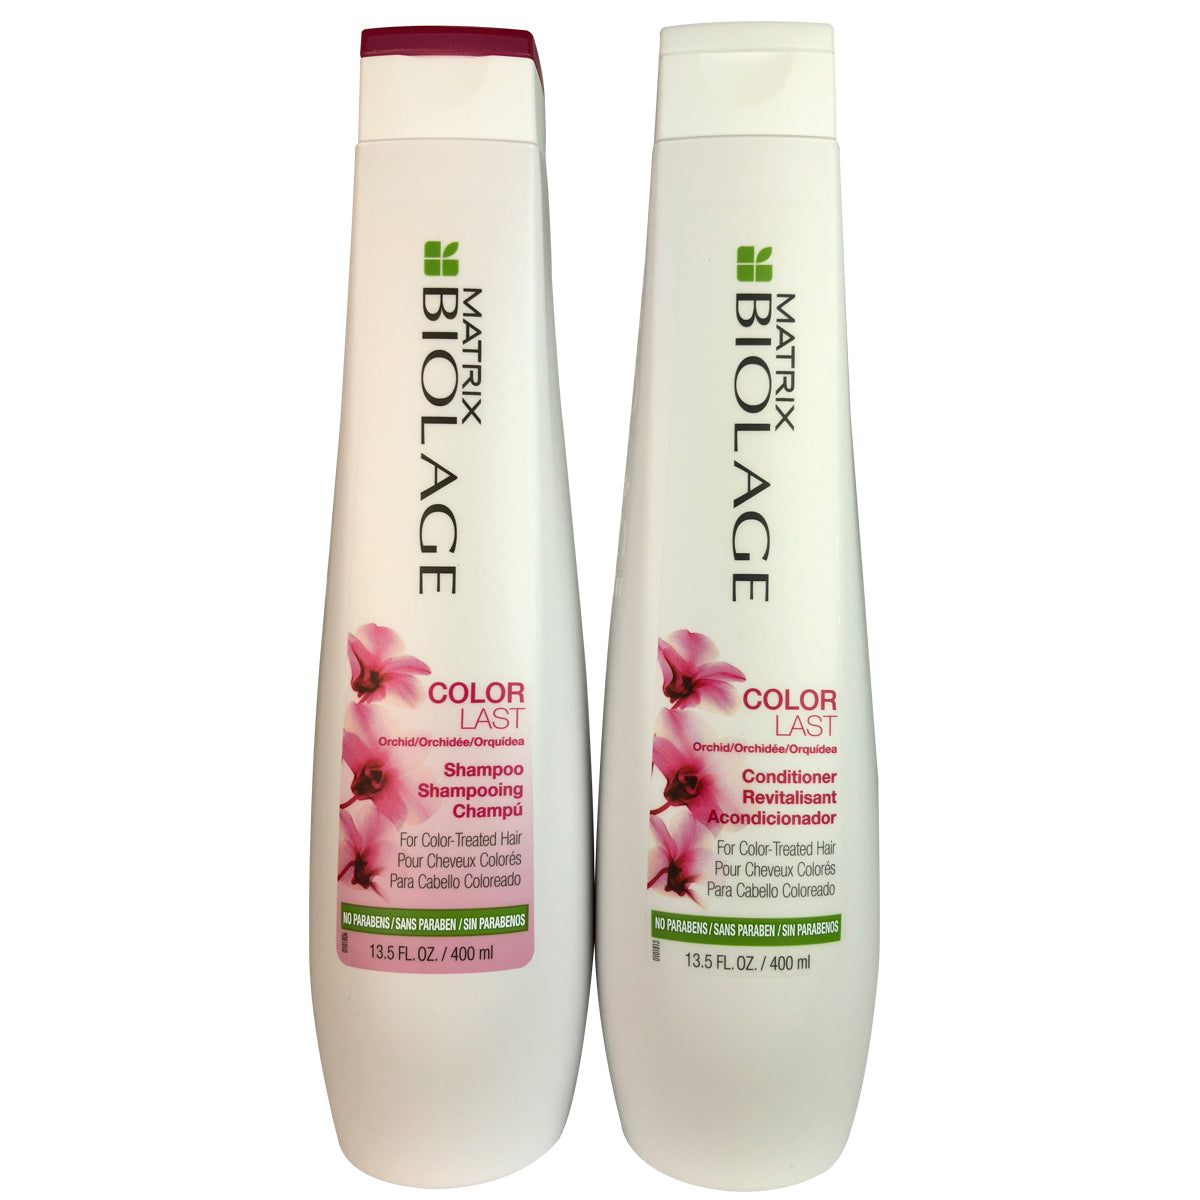 Matrix Biolage Colorlast Shampoo & Conditioner Set for Colored Hair 13.5 oz Each